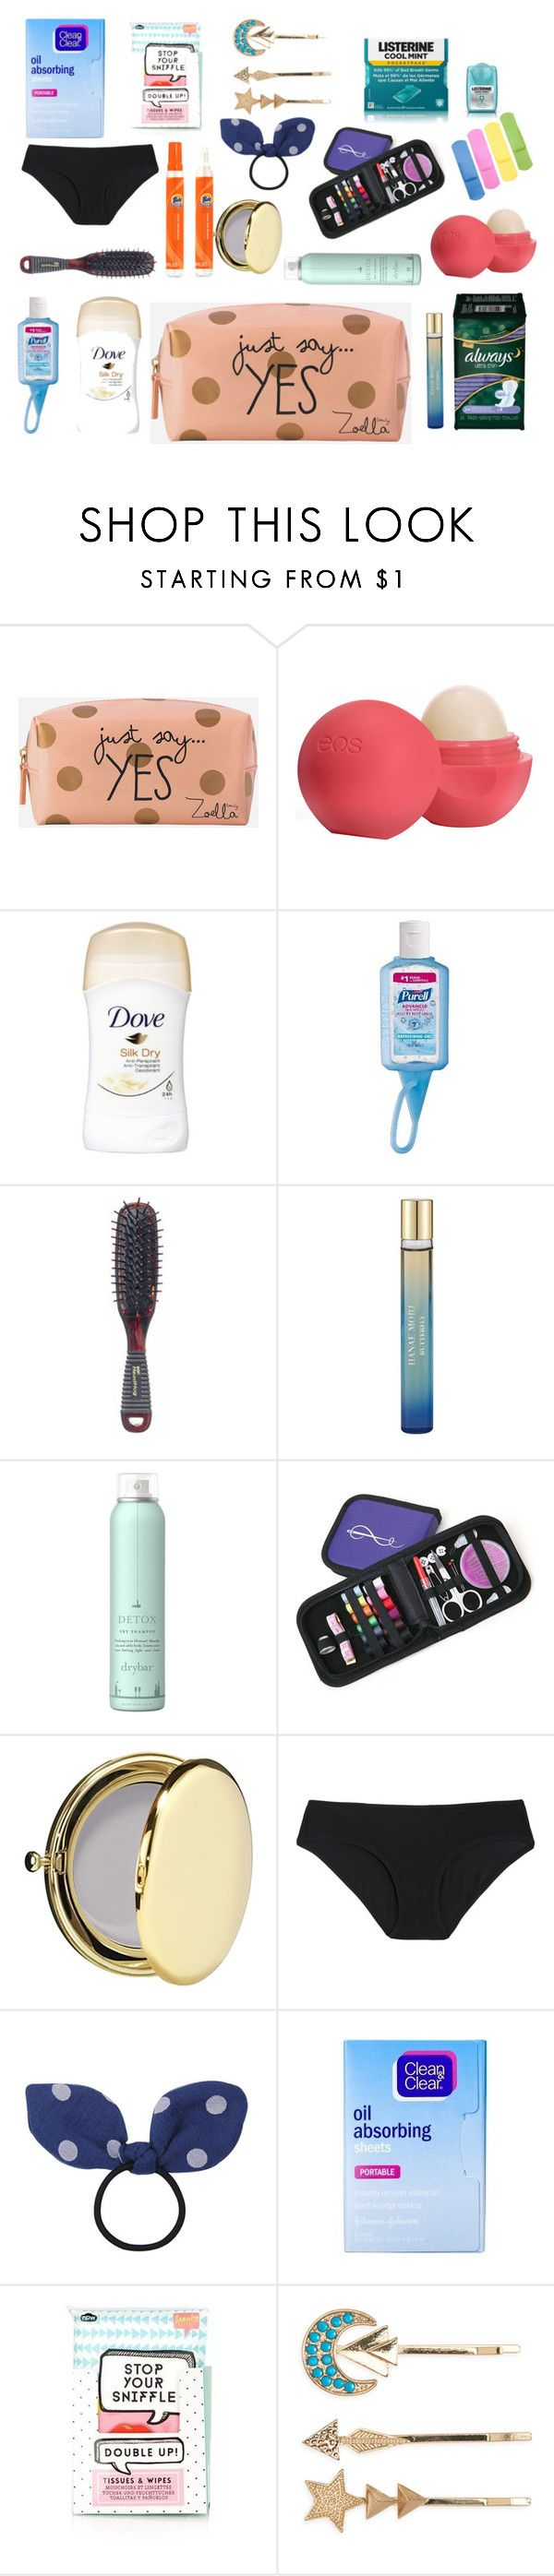 """Teen Emergency kit"" by explorer-14687837949 on Polyvore featuring Zoella Beauty, Eos, Kent, Hanae Mori, Drybar, Estée Lauder, Land of Women, Chicnova Fashion, Clean & Clear and Topshop"